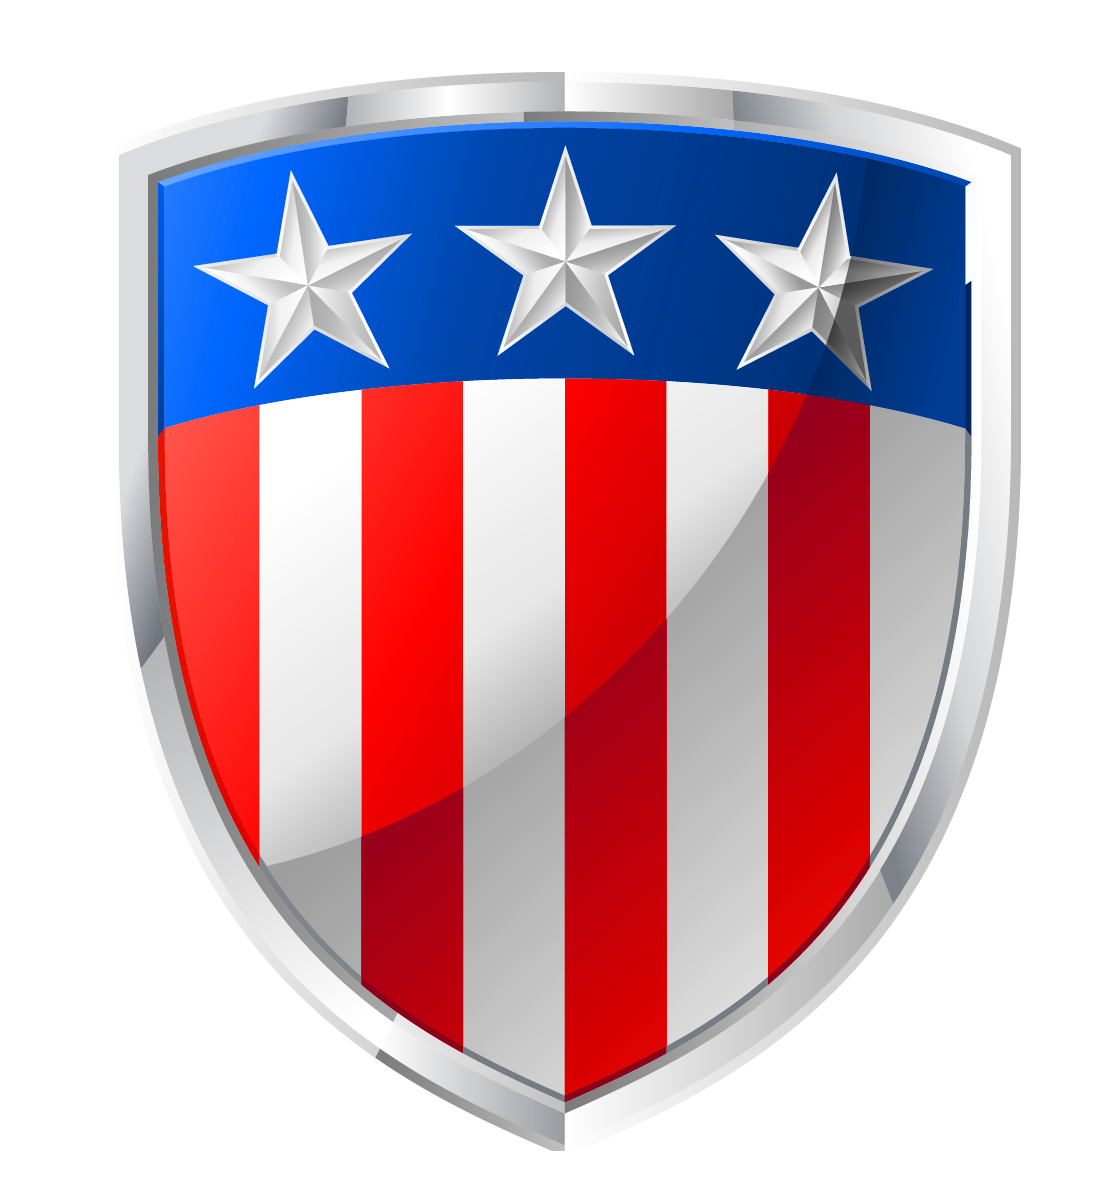 Shield clipart flag. American badge decor png